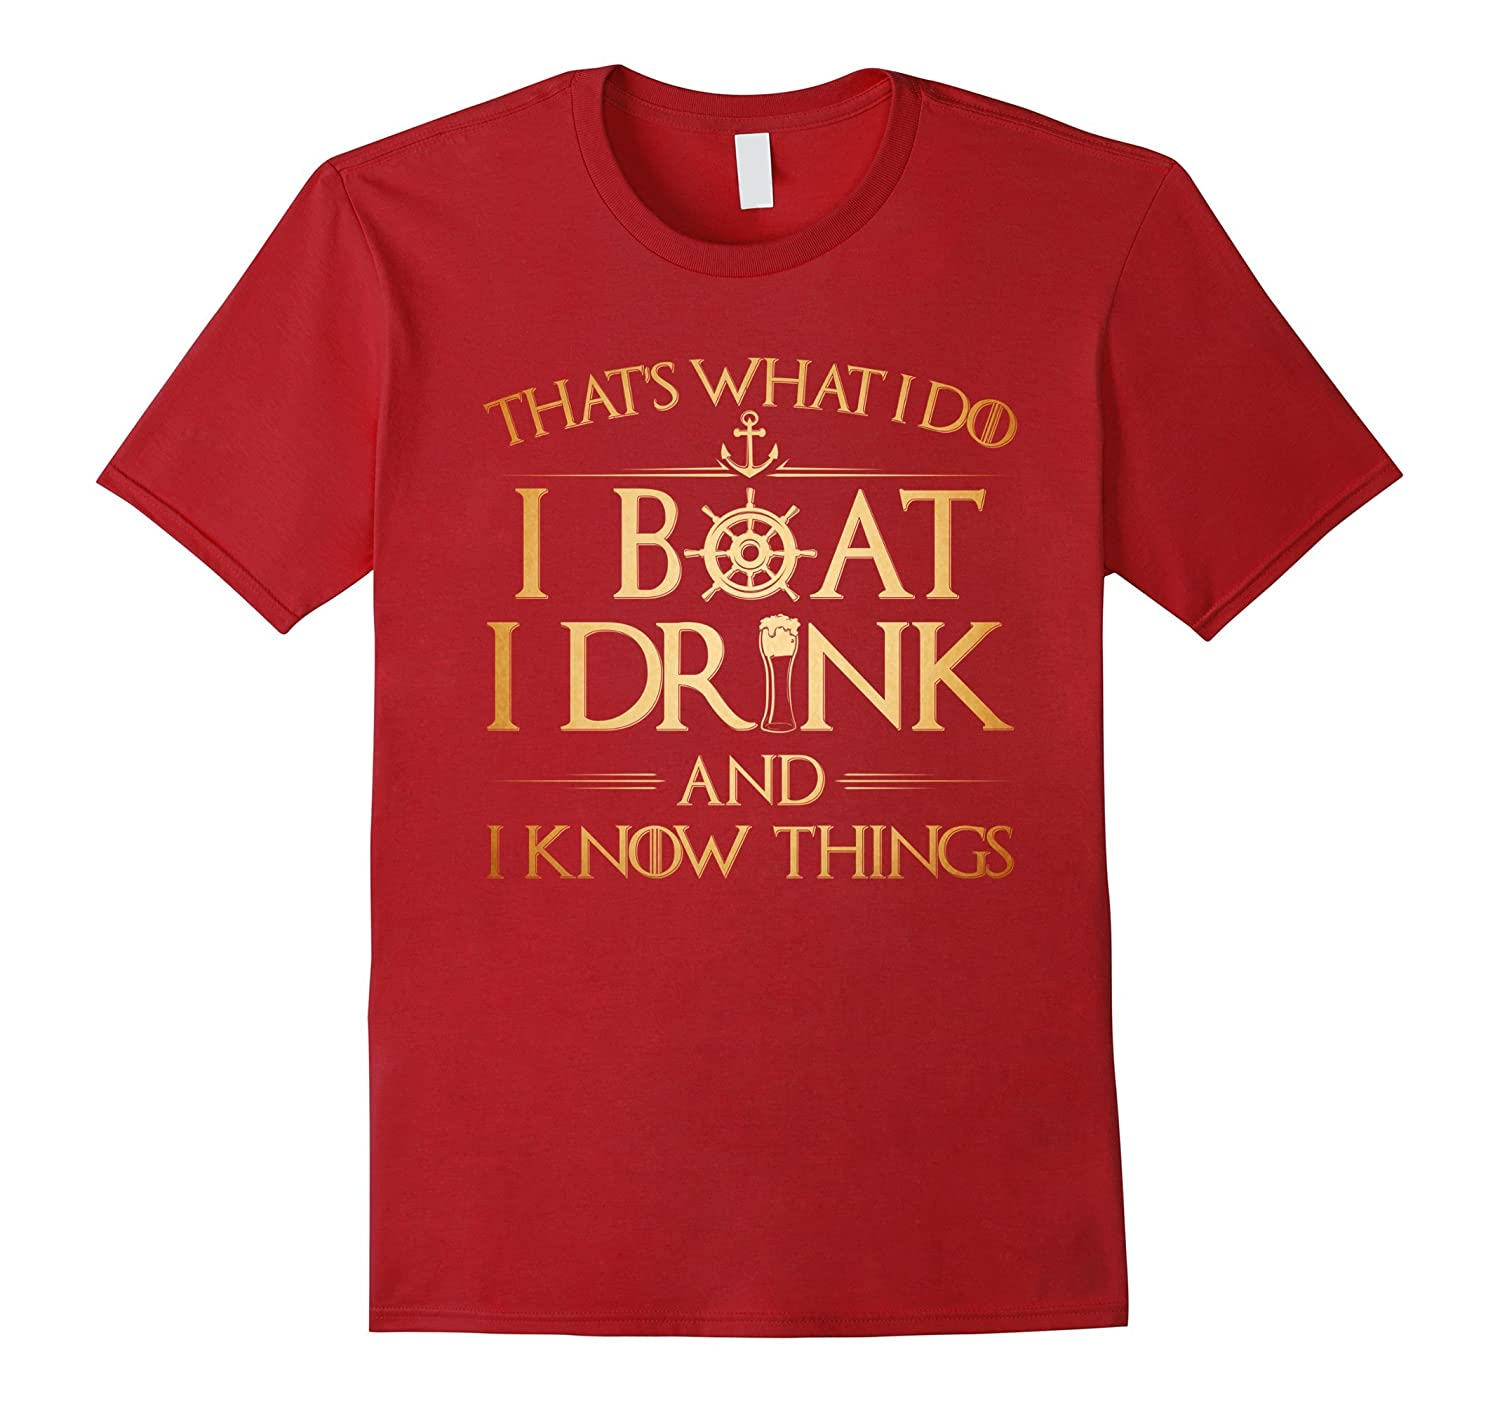 That's what I do I boat I drink and I know things T-Shirt